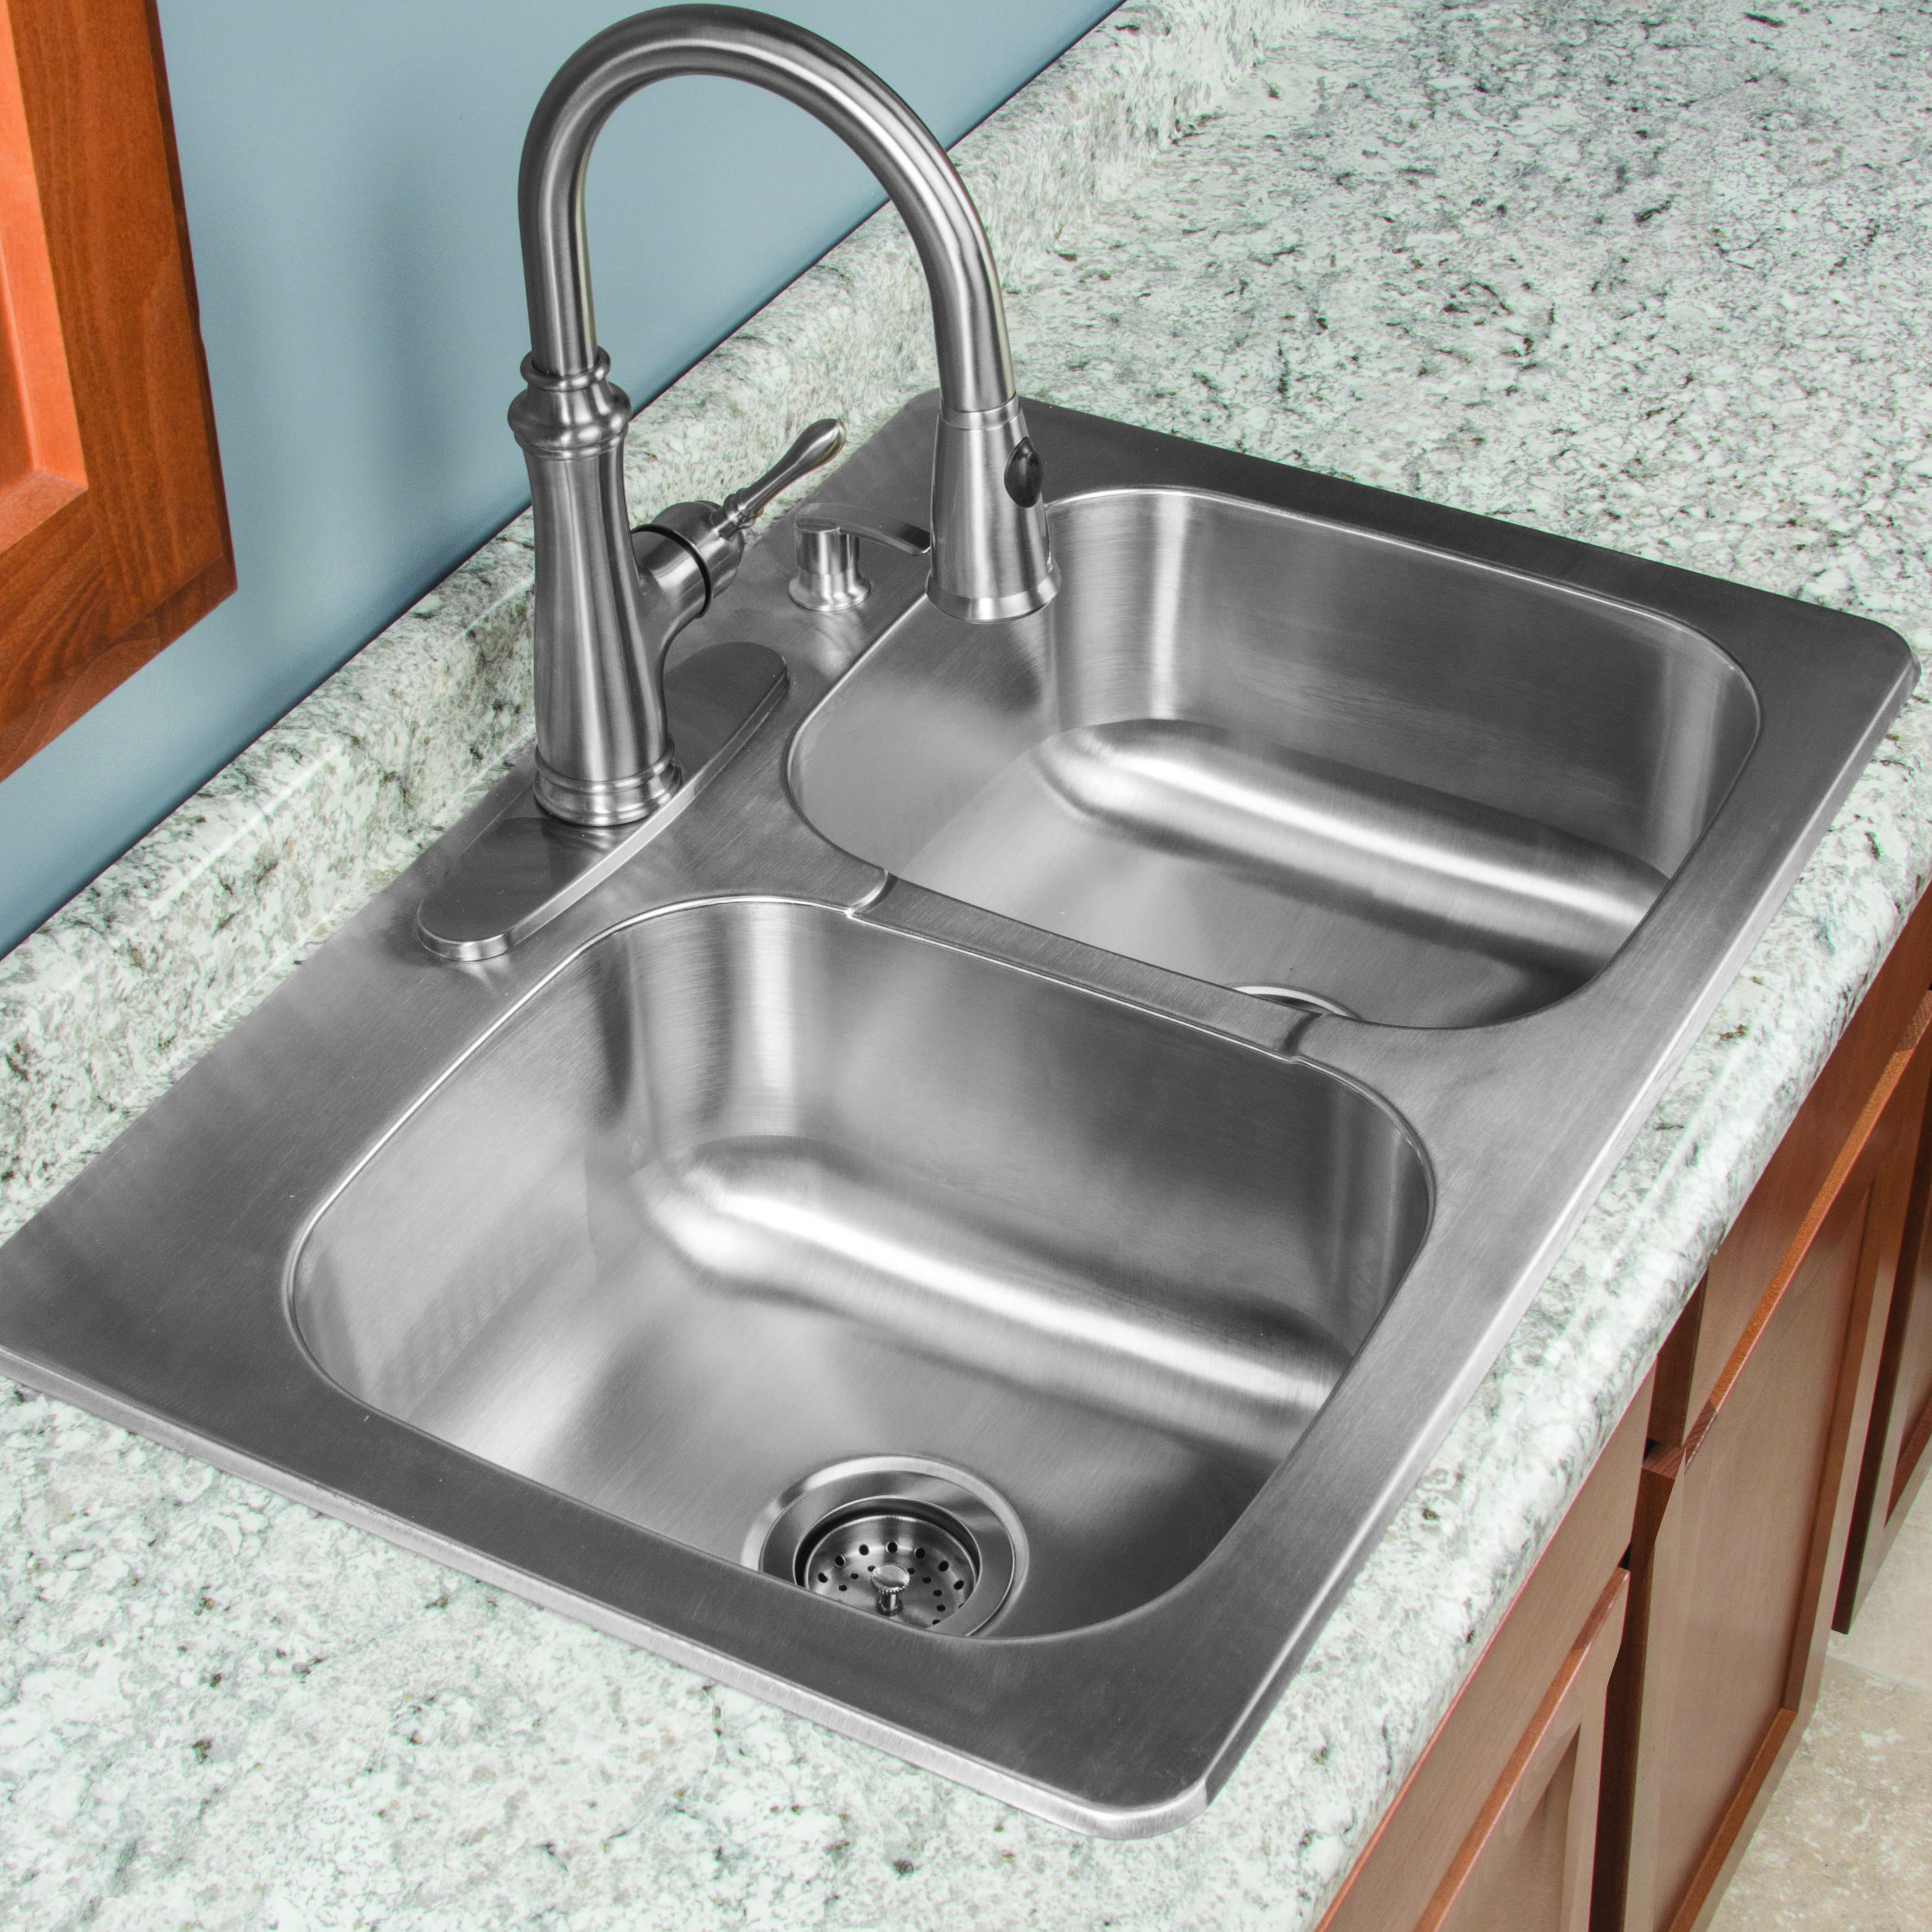 Kitchen sink stainless steel double drainer single bowl in vic ebay - Designed With Thoughtful Details The Tuscany 9 Double Bowl Kitchen Sink Kit